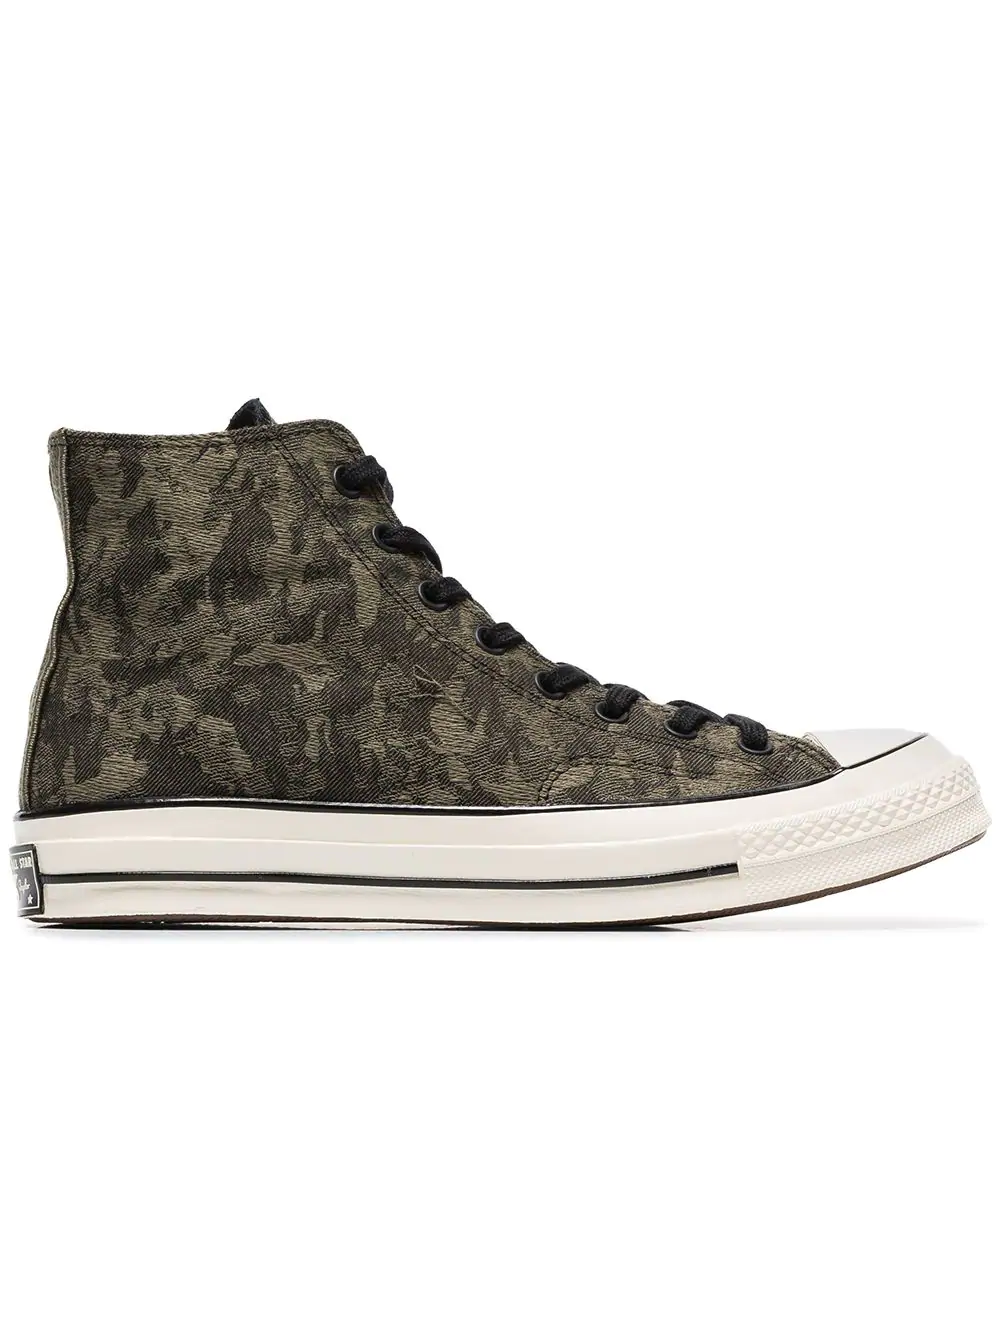 139a43ecd44f Converse Green Chuck 70 Camouflage Cotton High Top Sneakers